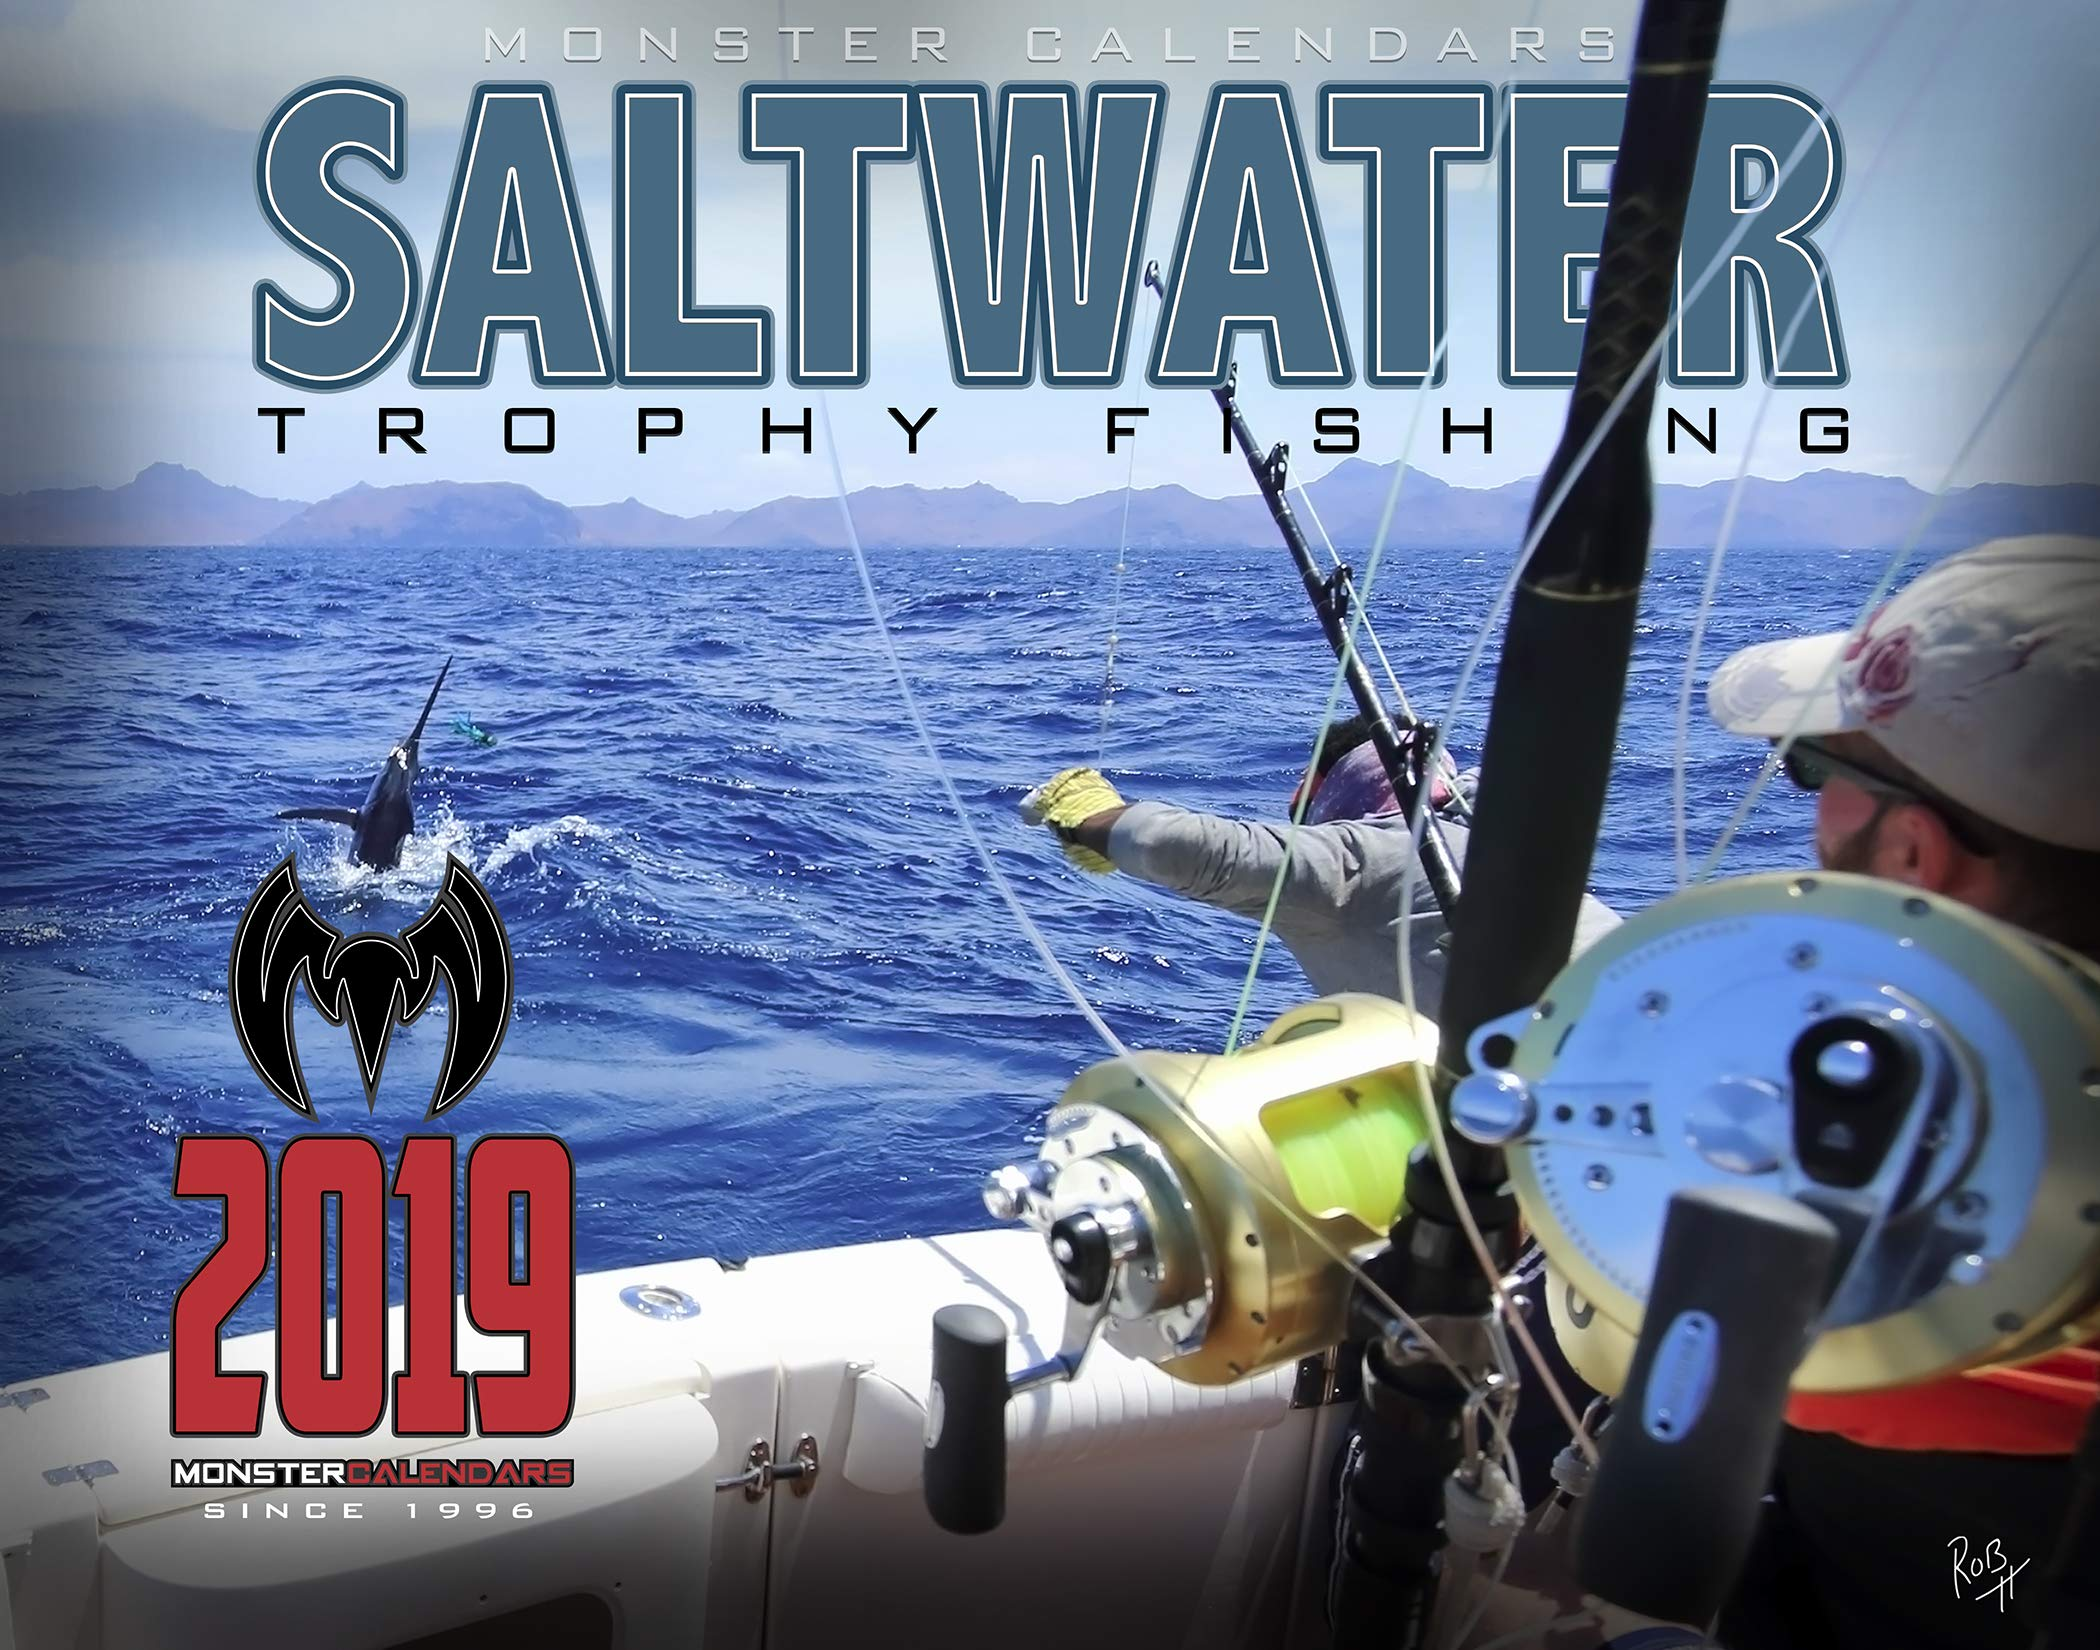 (5-Pack) 2019 Saltwater Fishing Calendar by Monster Calendars/Robert King by The KING Company